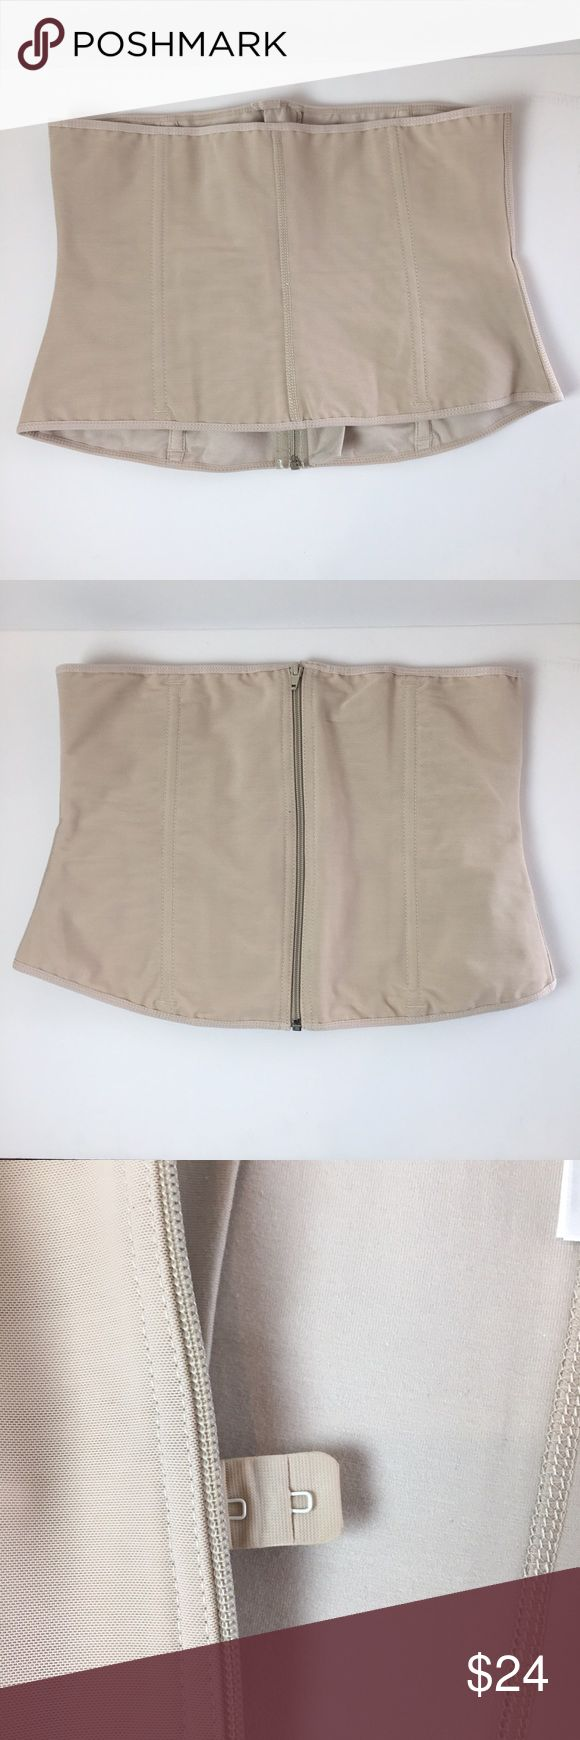 "Ann Chery Nude Waist Cincher. XXL Waist Cincher. 1024. Nude. Zip up and eye hook closure. Size XXL/40. Fits regular torso 11"". Comfort fit for less compression. Nice pre-owned condition. #E Ann Chery Intimates & Sleepwear Shapewear"